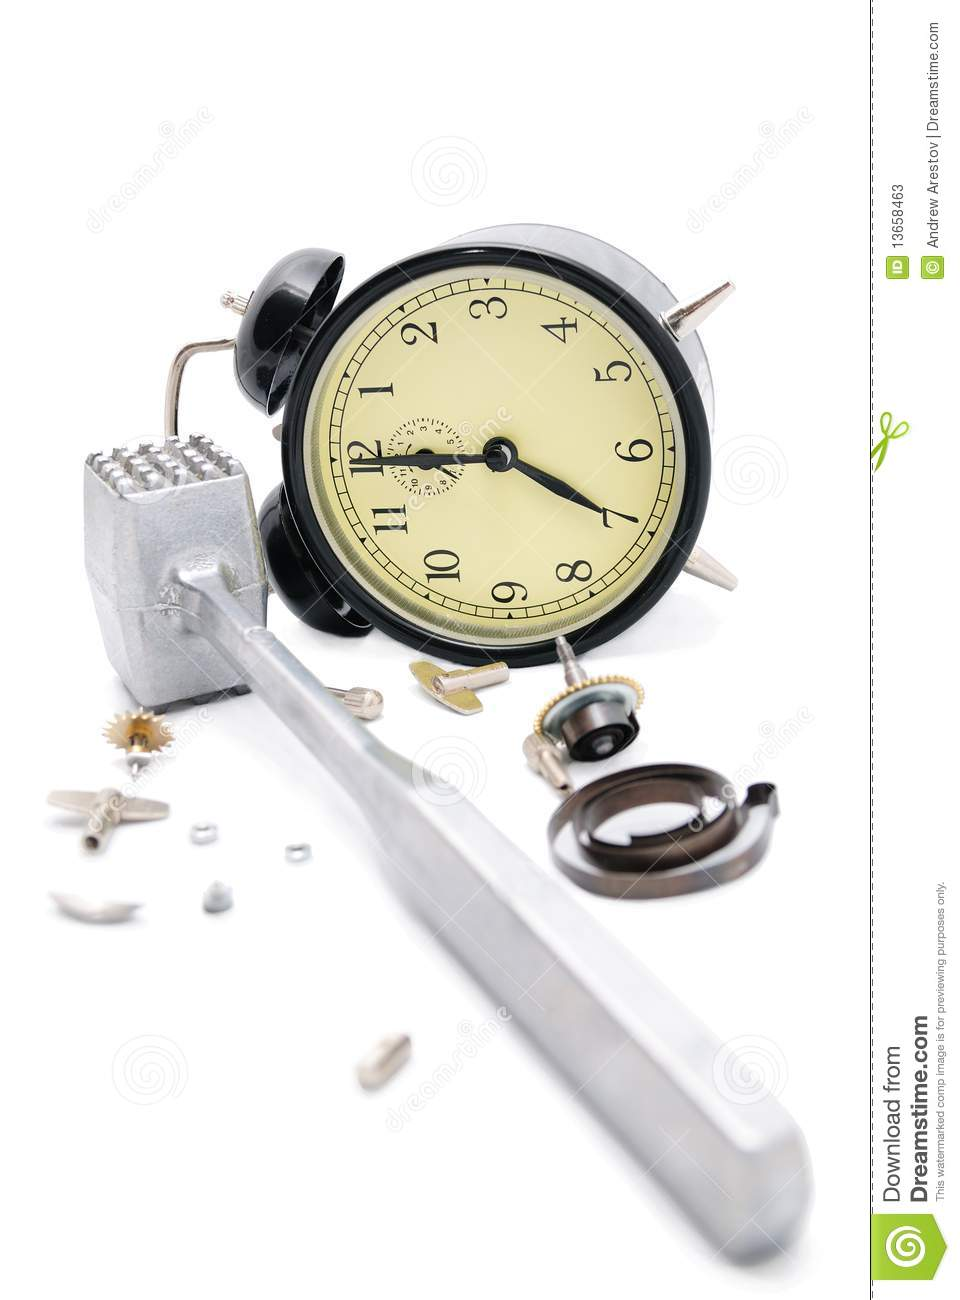 alarm clock broken by a hammer  isolate on white  stock